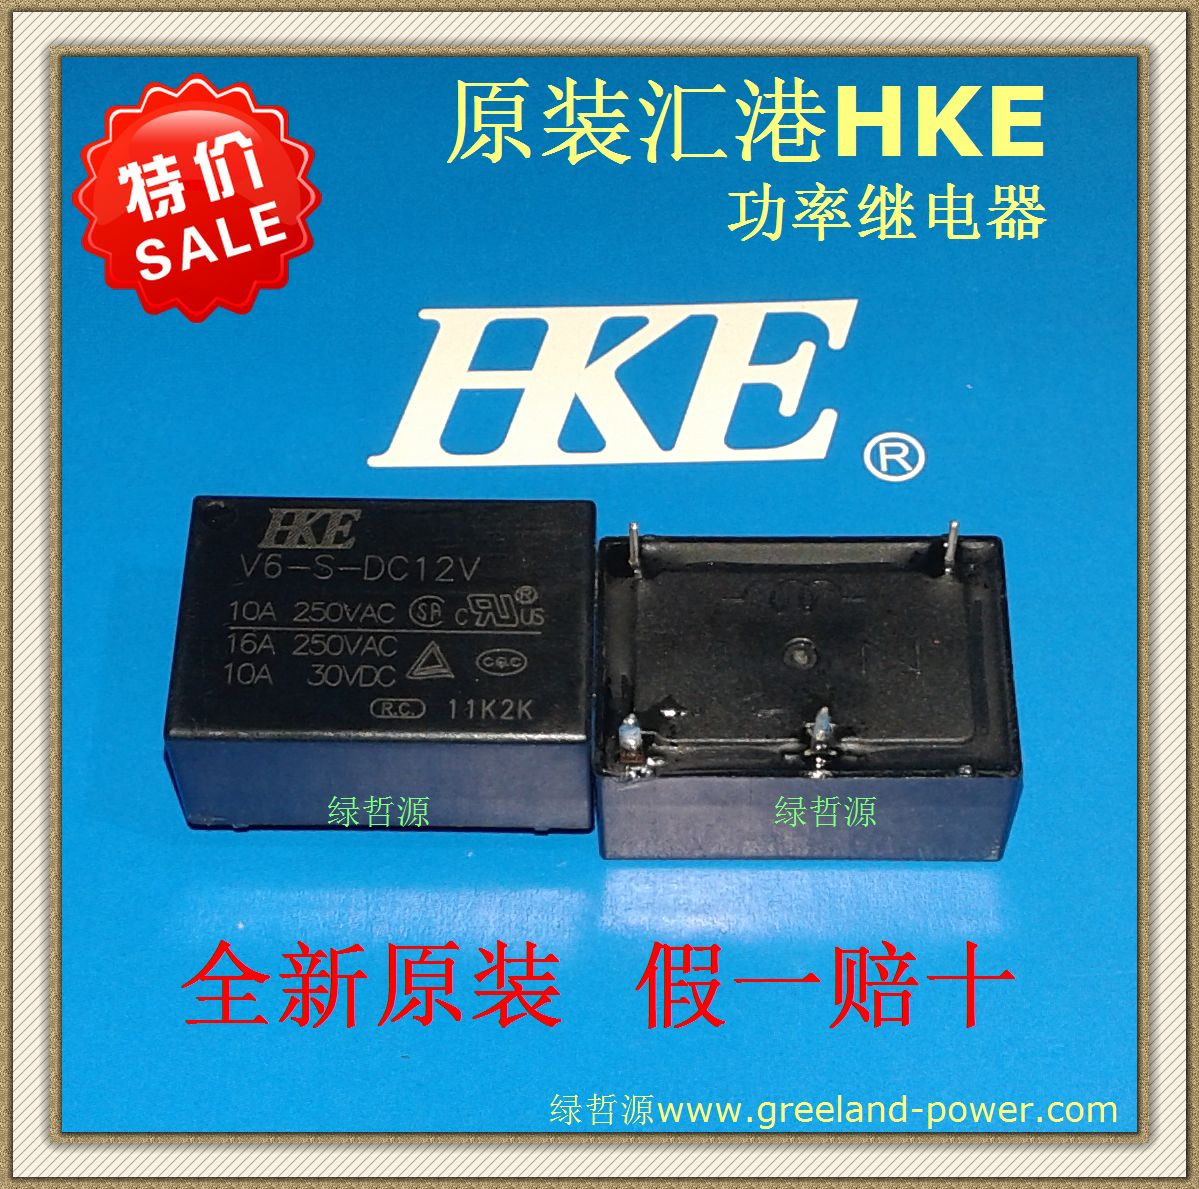 Usd 472 Original Hke Huigang Power Relay V6 S Dc12v 4 Pin Set Electrical Normally Open Lightbox Moreview